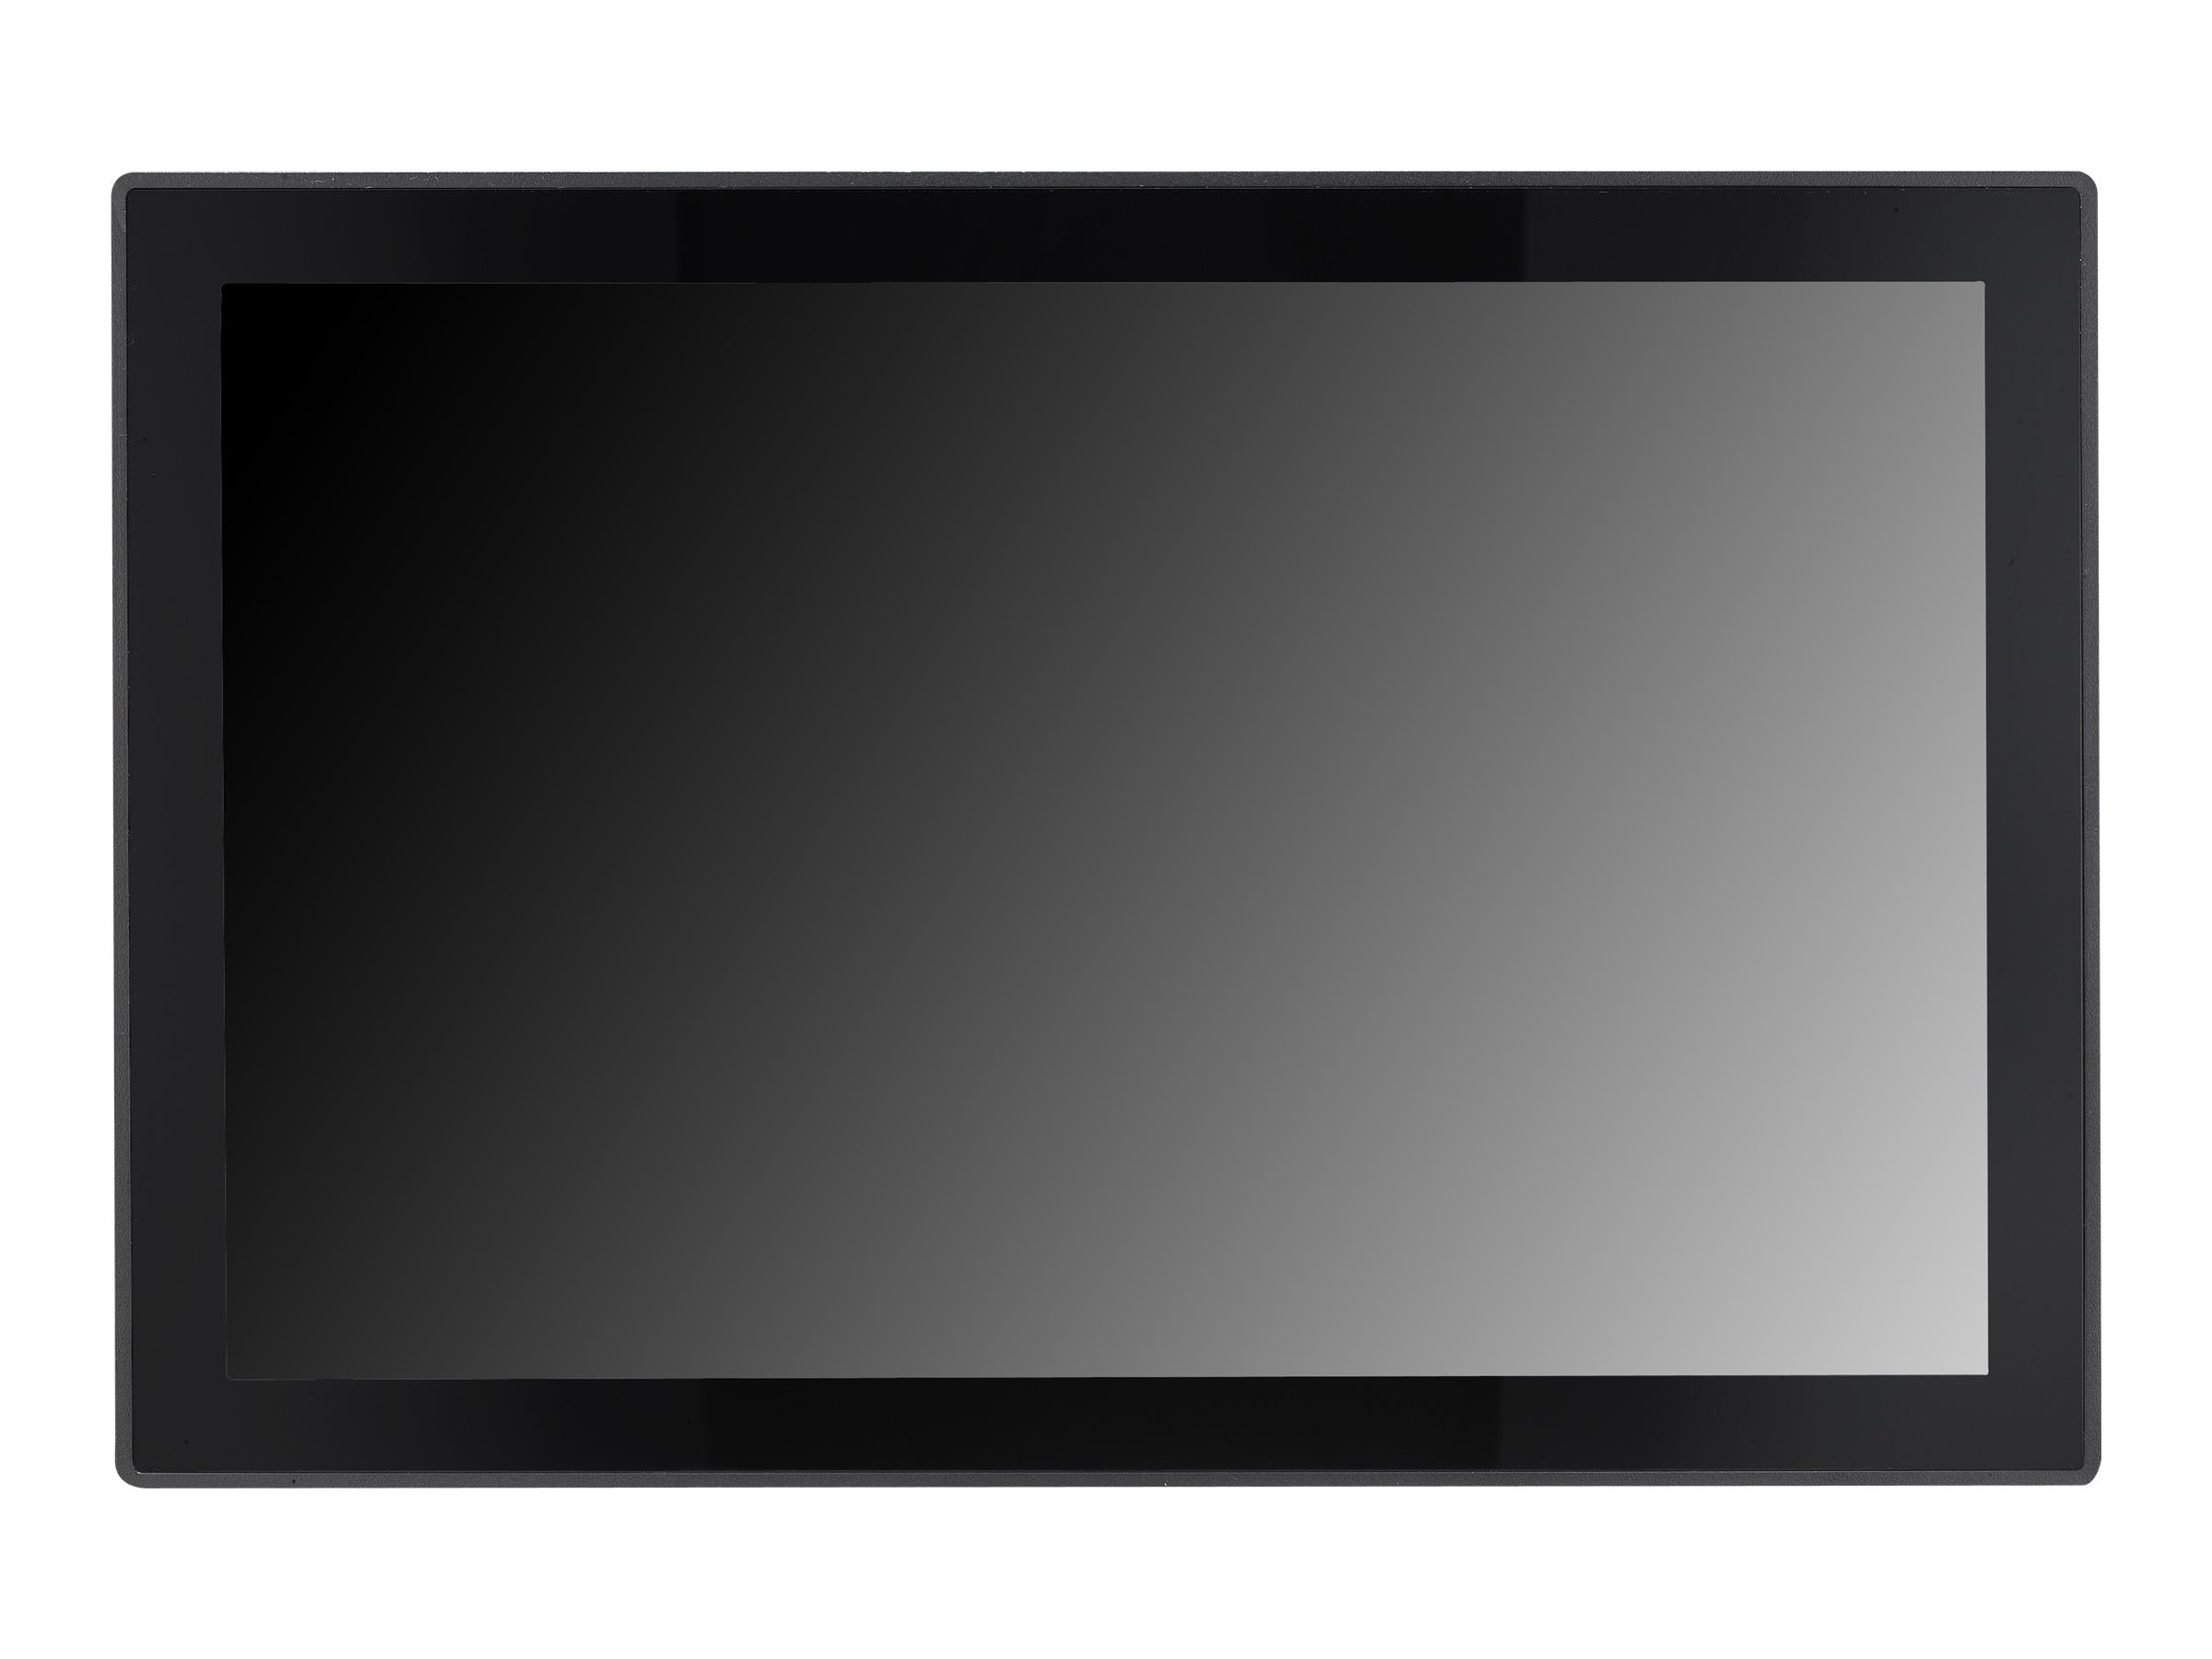 LG 10 SM3TB-B LED-LCD Touchscreen Display, Black